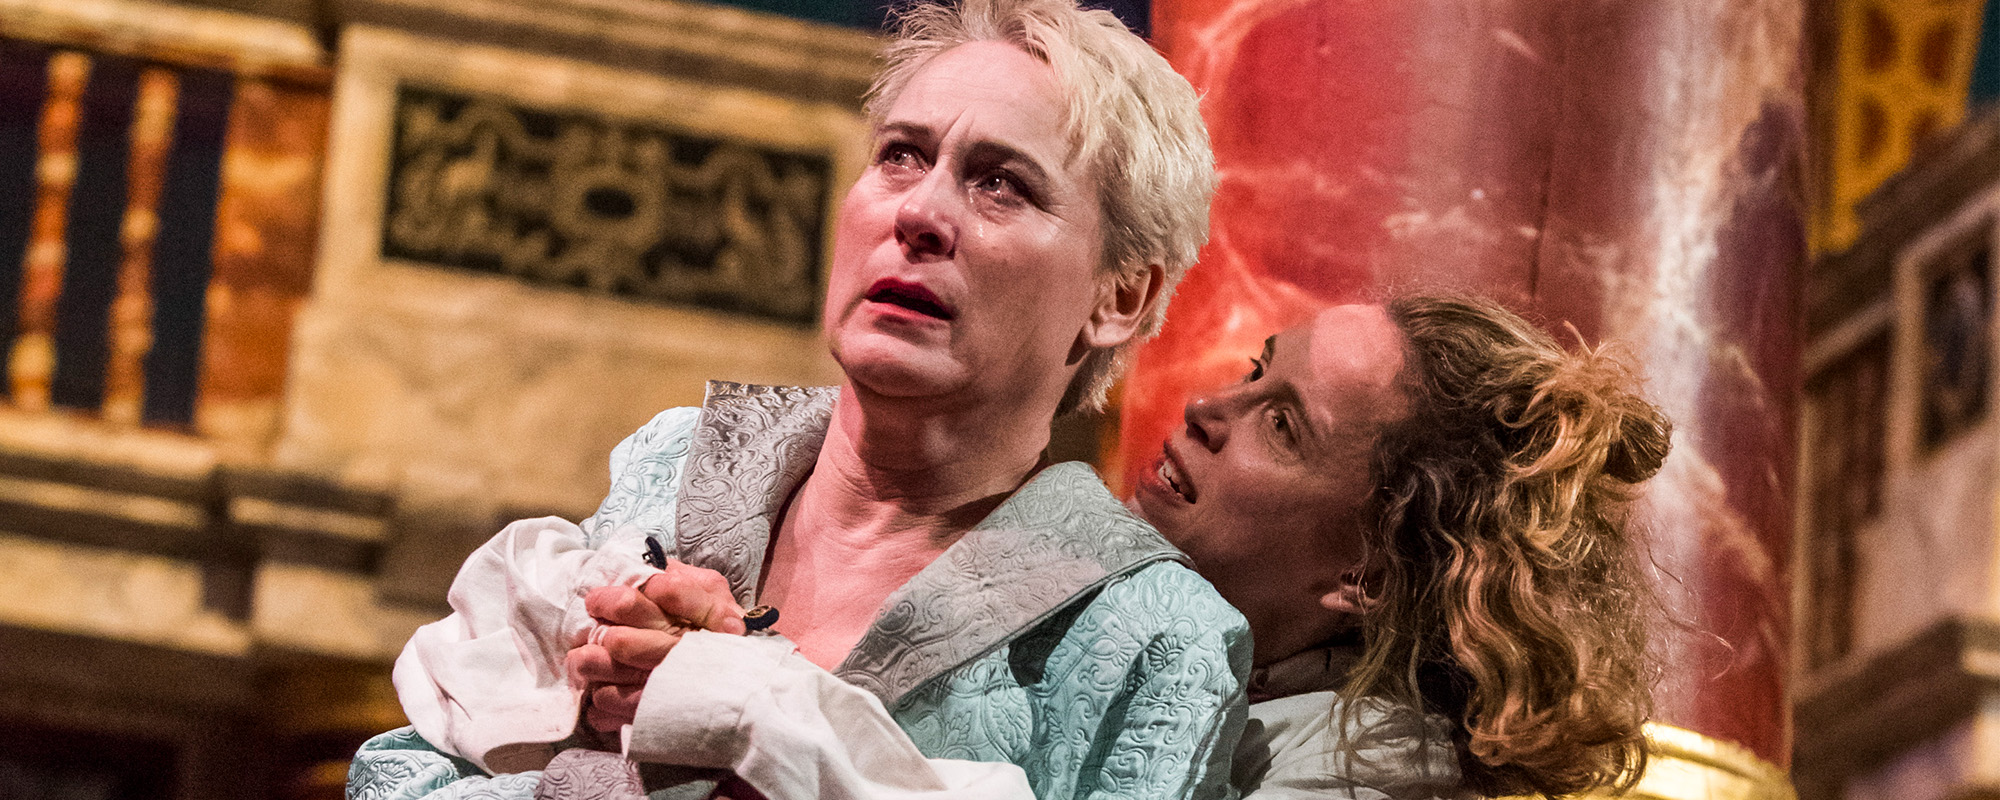 An actor looks distressed on the globe stage while another actor wrap their arms round them in a sinister hug